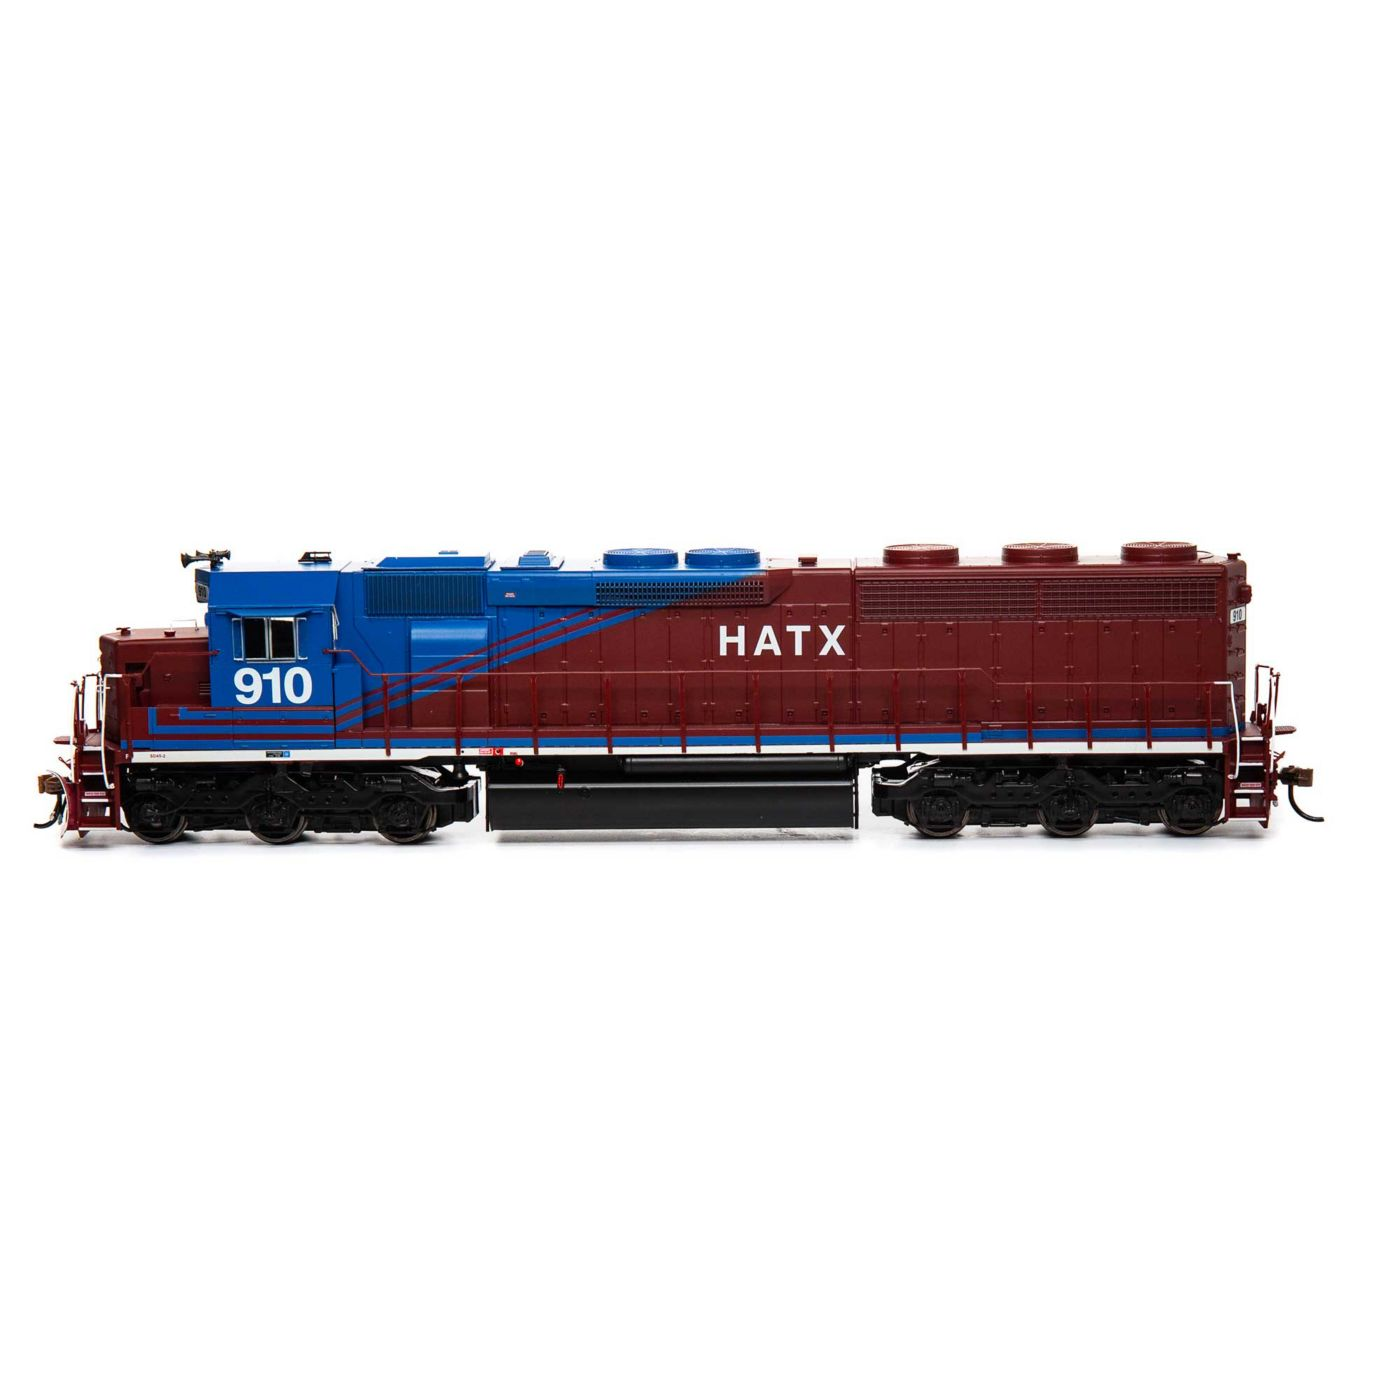 Athearn Genesis HO SD45-2 with DCC Ready HATX #910